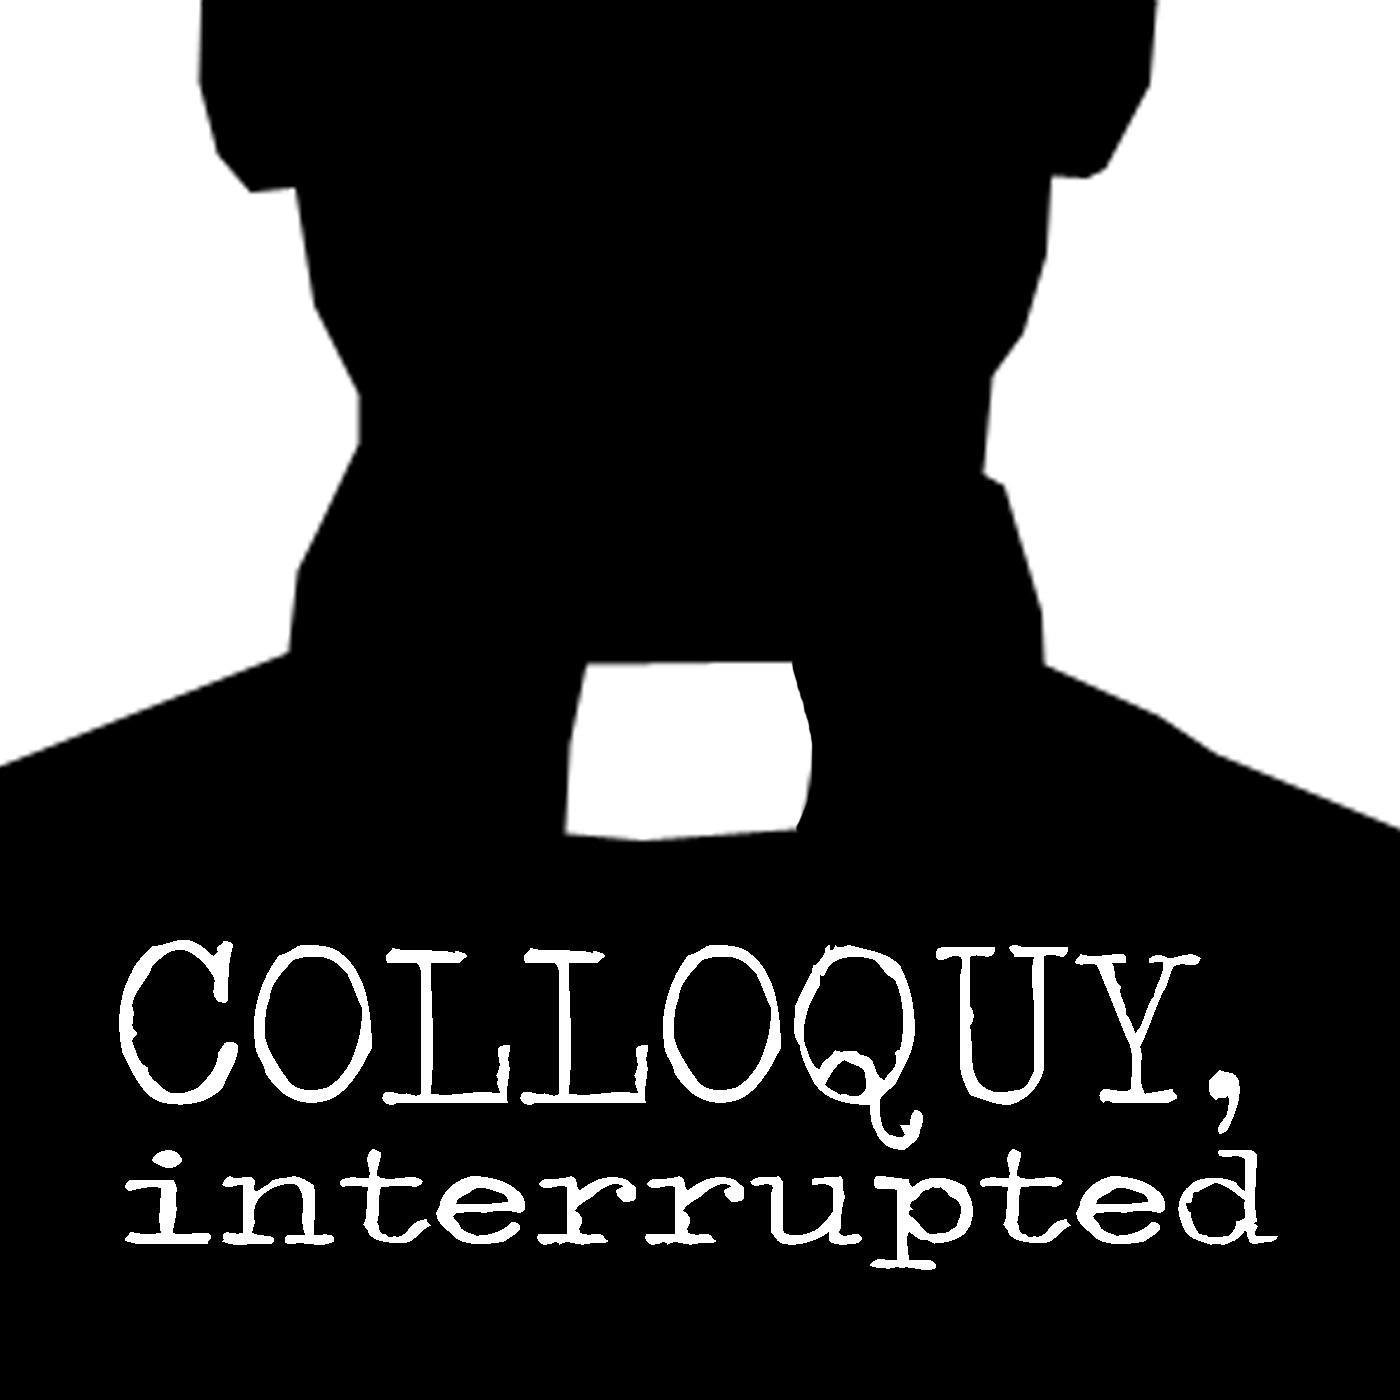 colloquy-interrupted.jpg